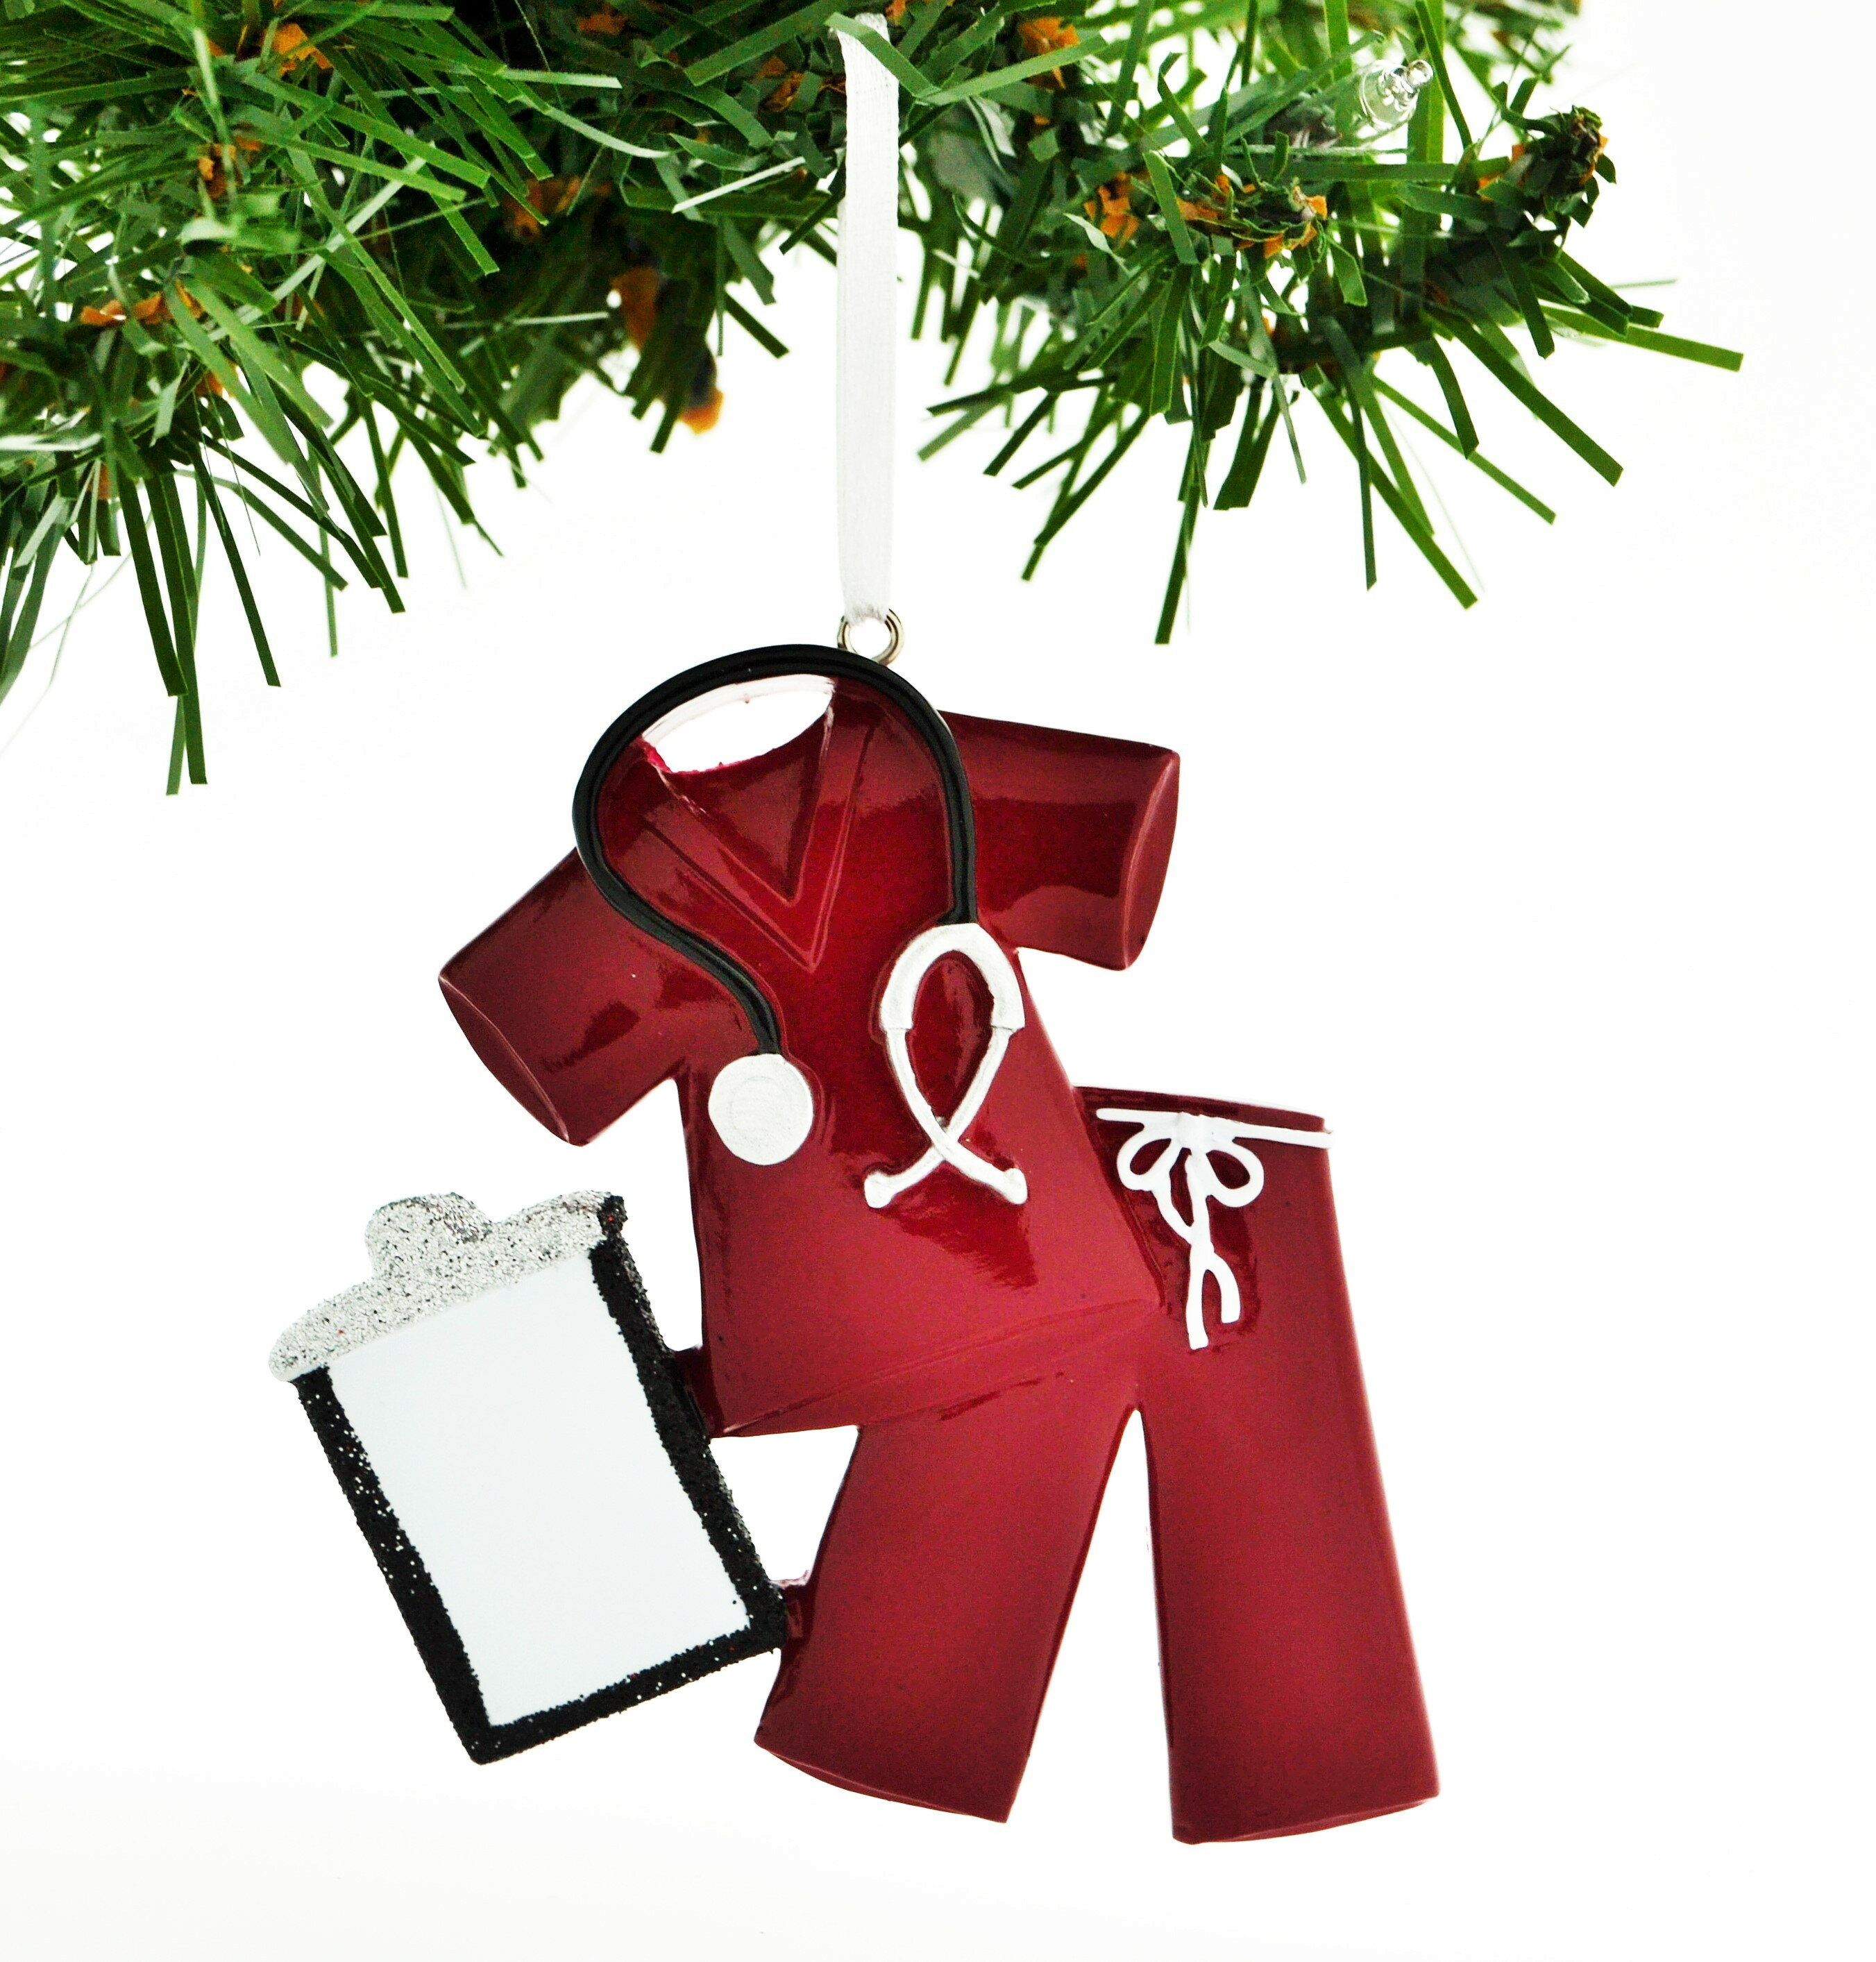 Personalized Christmas Ornament.Personalized Christmas Ornament Scrubs Doctor Nurse Hanging Figurine